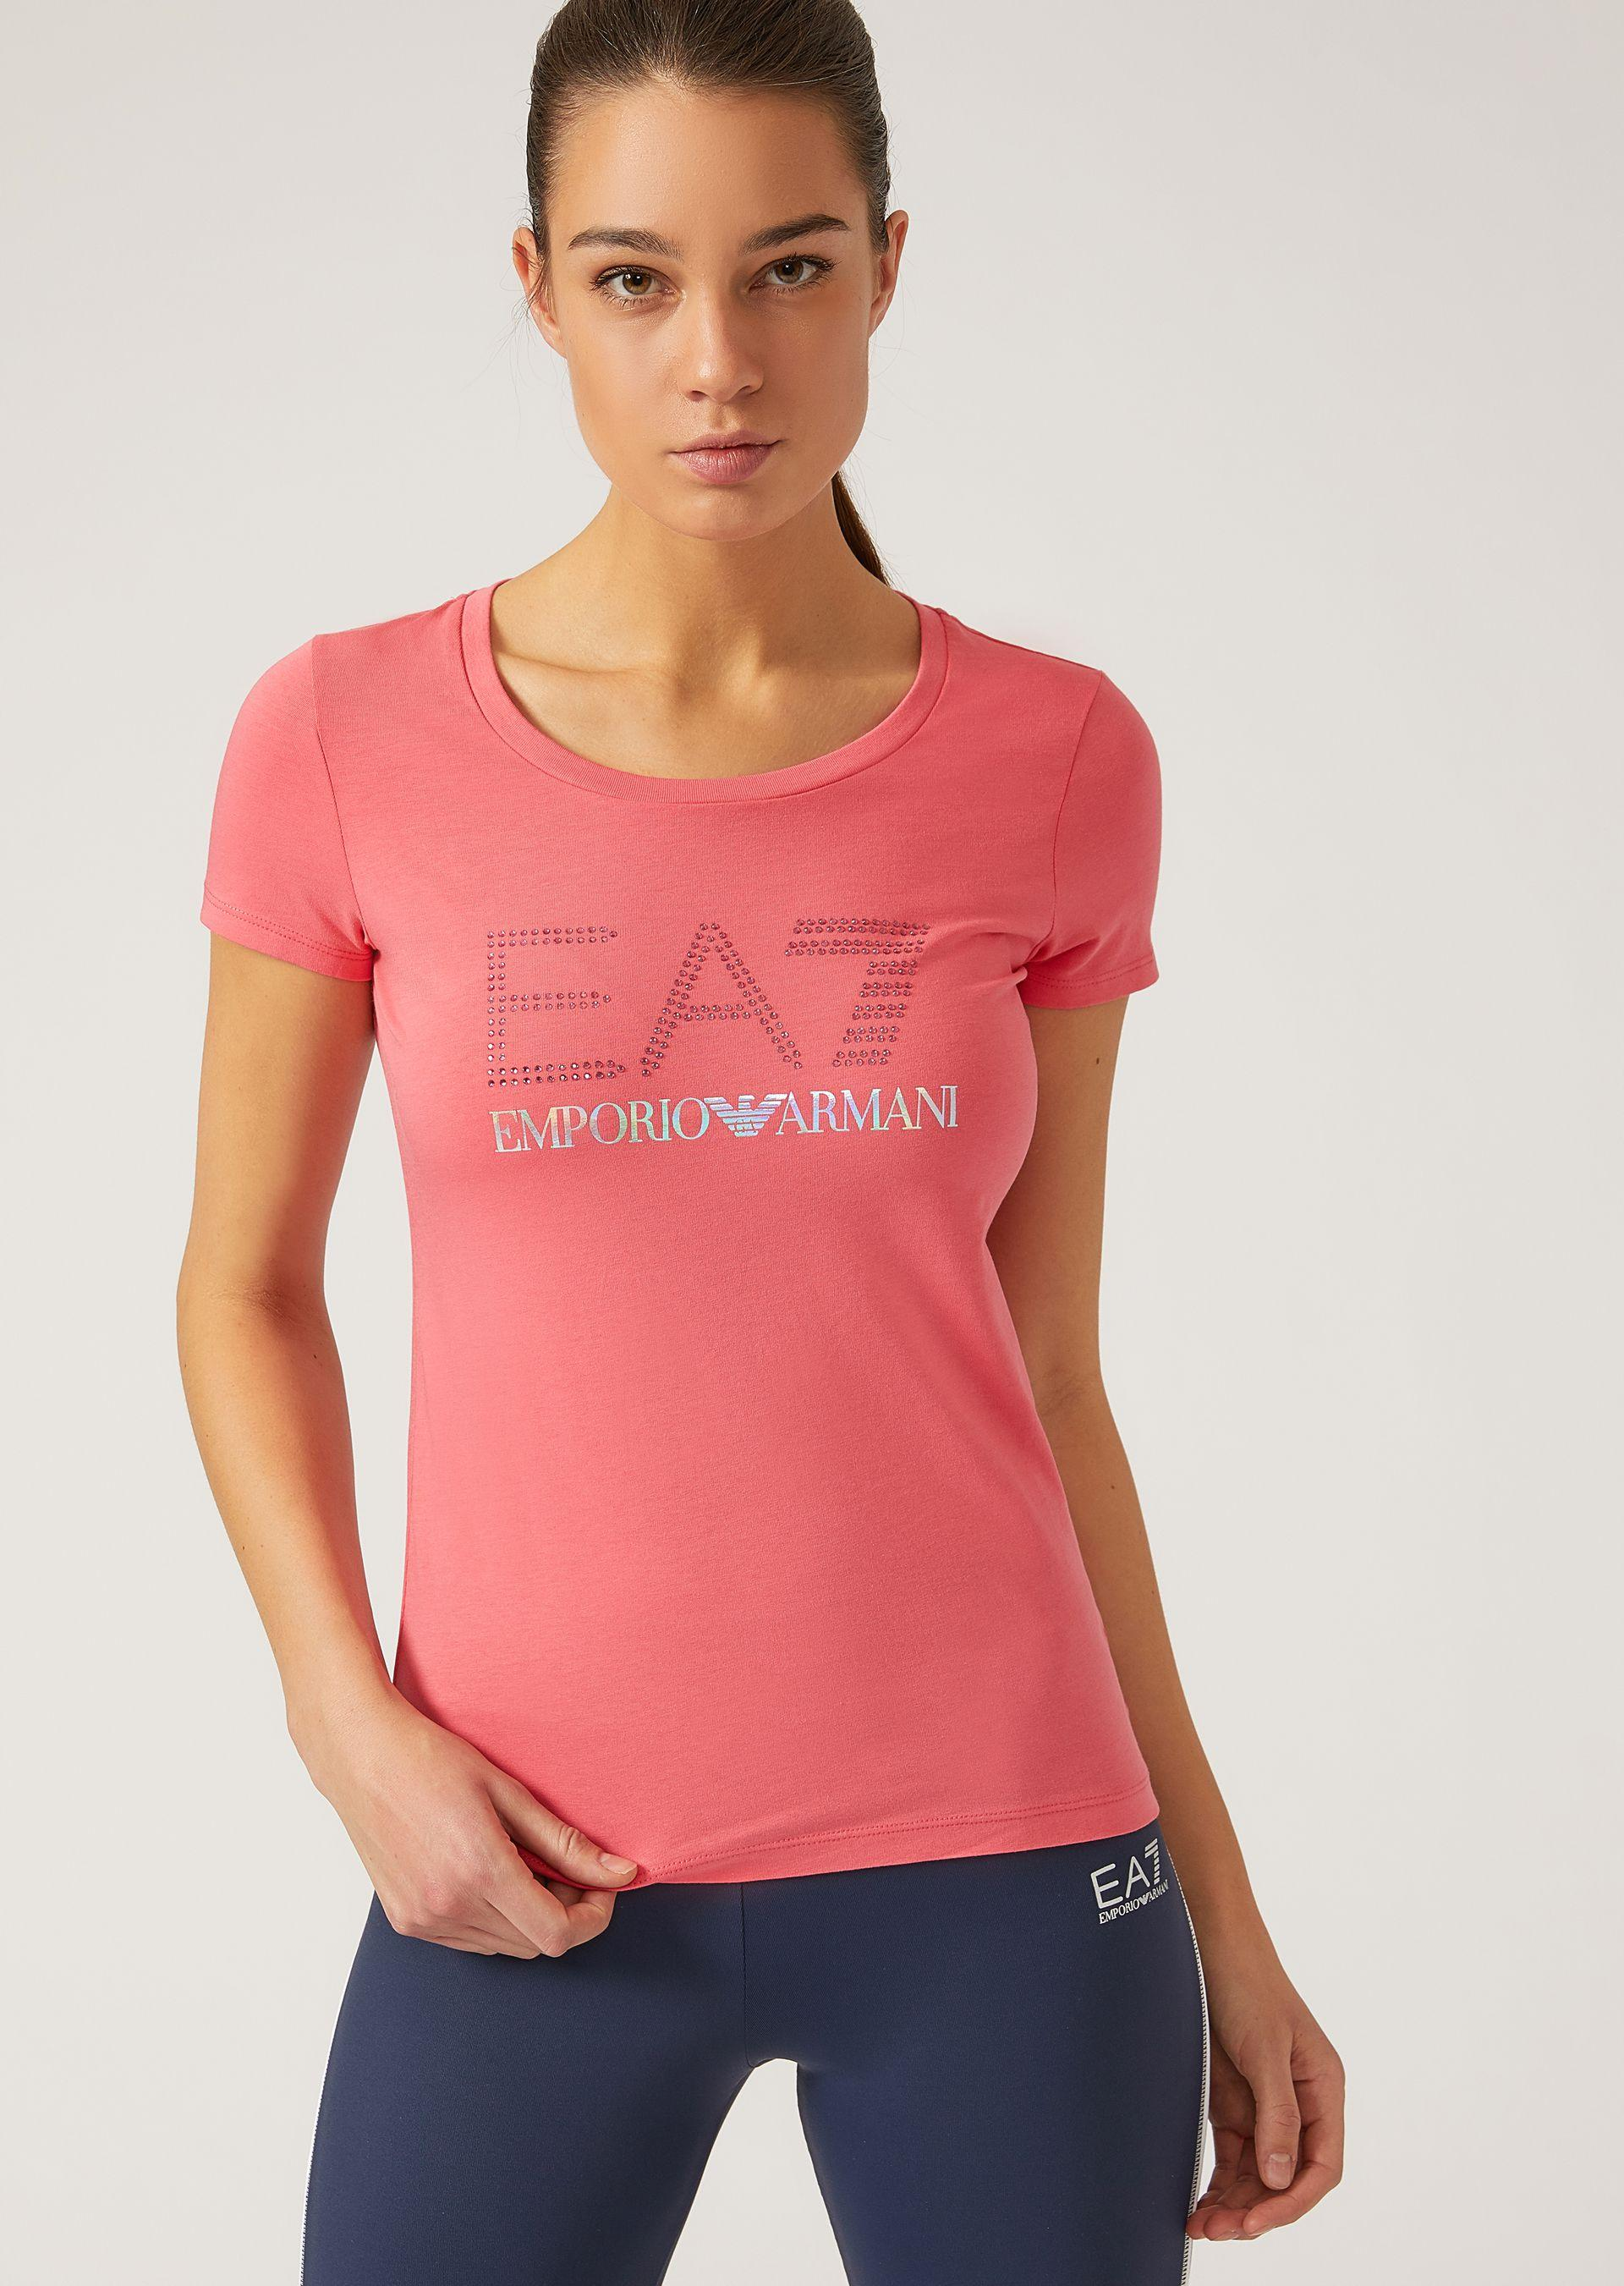 Emporio Armani T-shirts - Item 12131313 In Coral ; White ; Azure ; Black